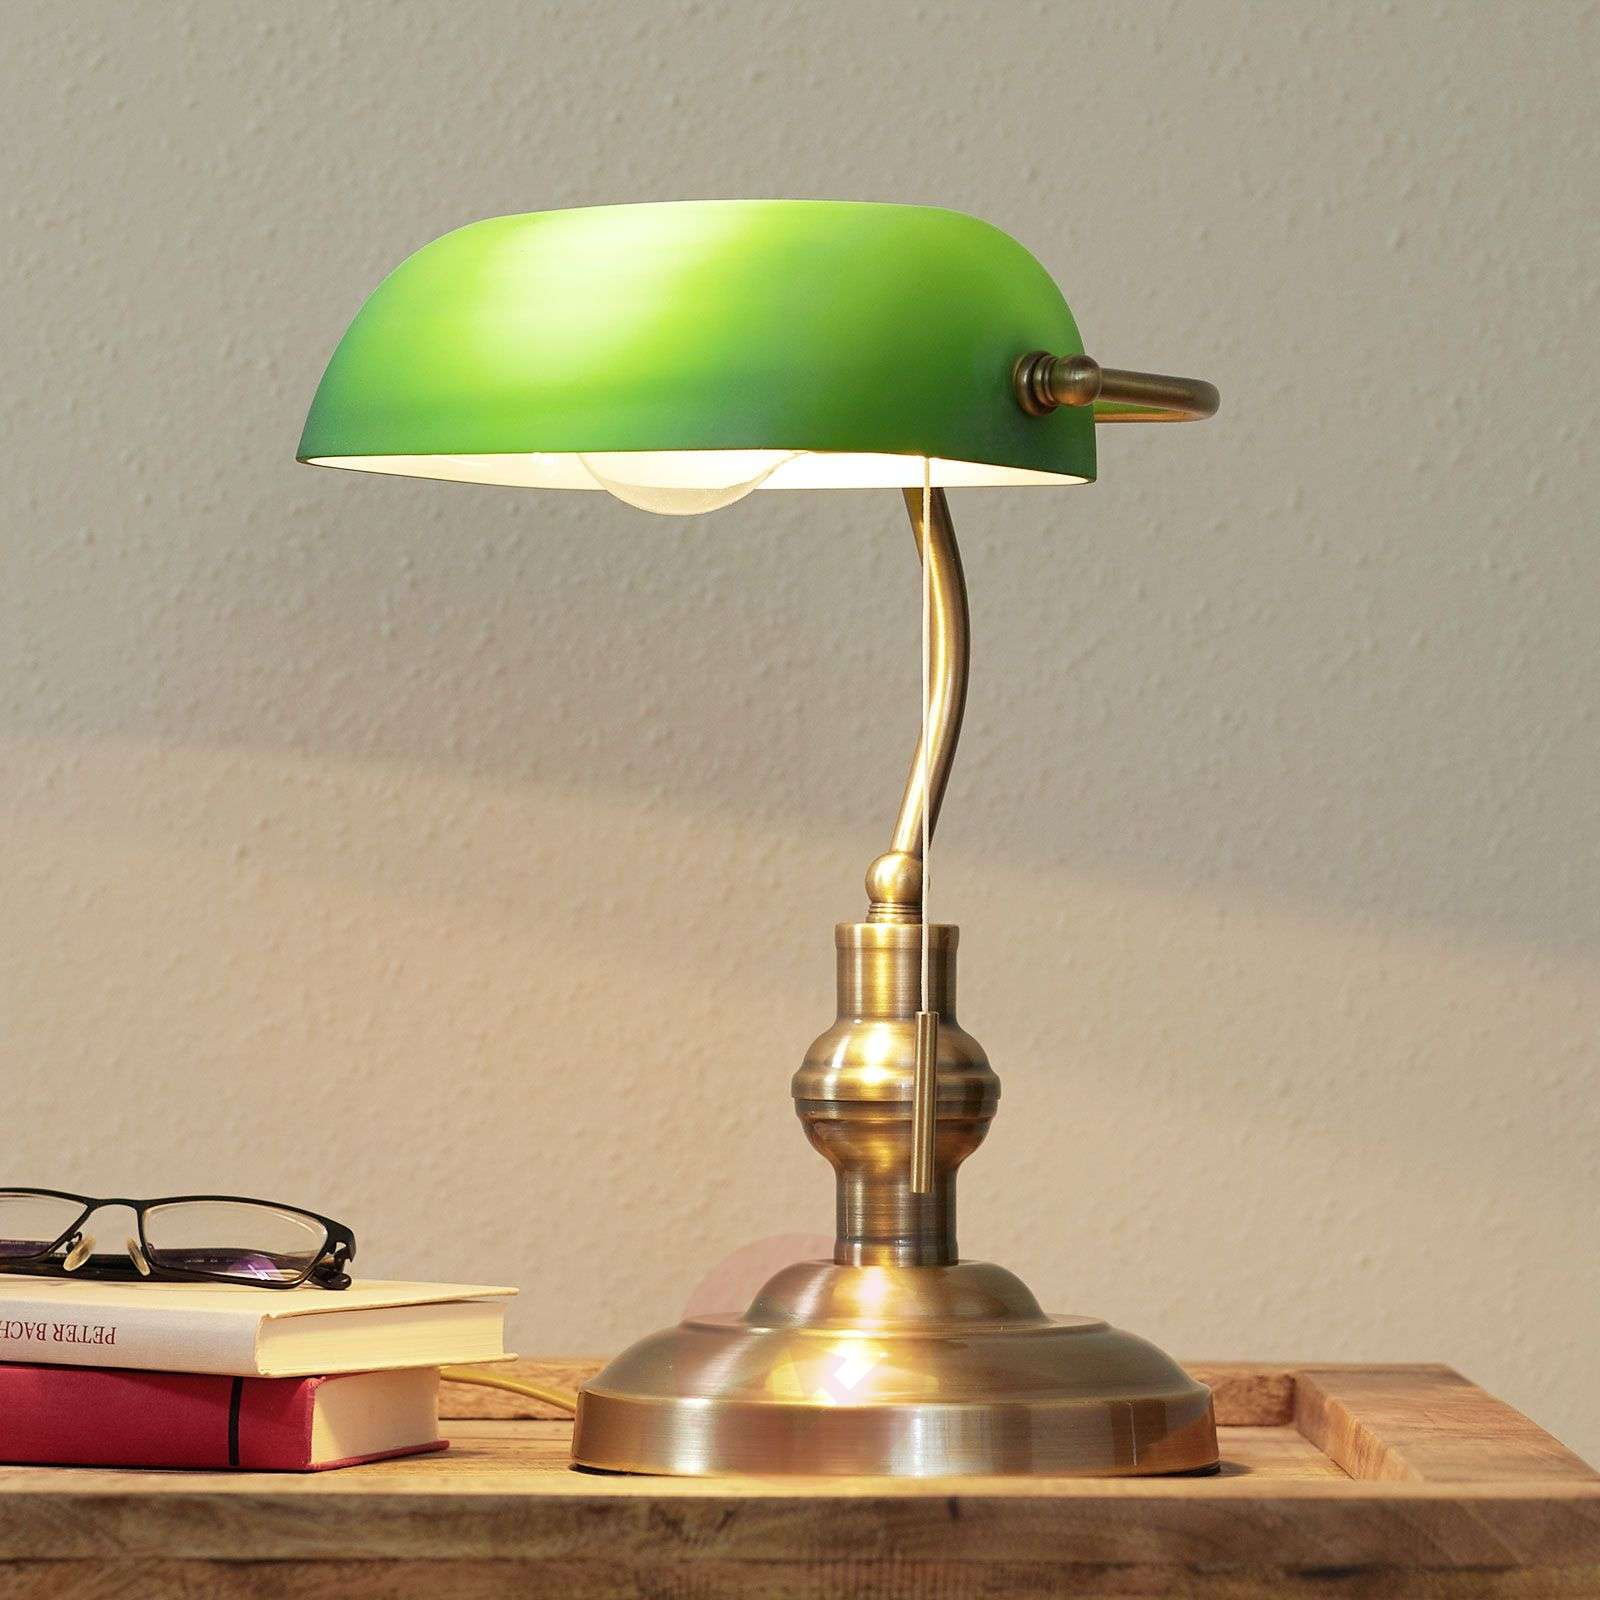 Milenka desk lamp with green lampshade-9620986-03